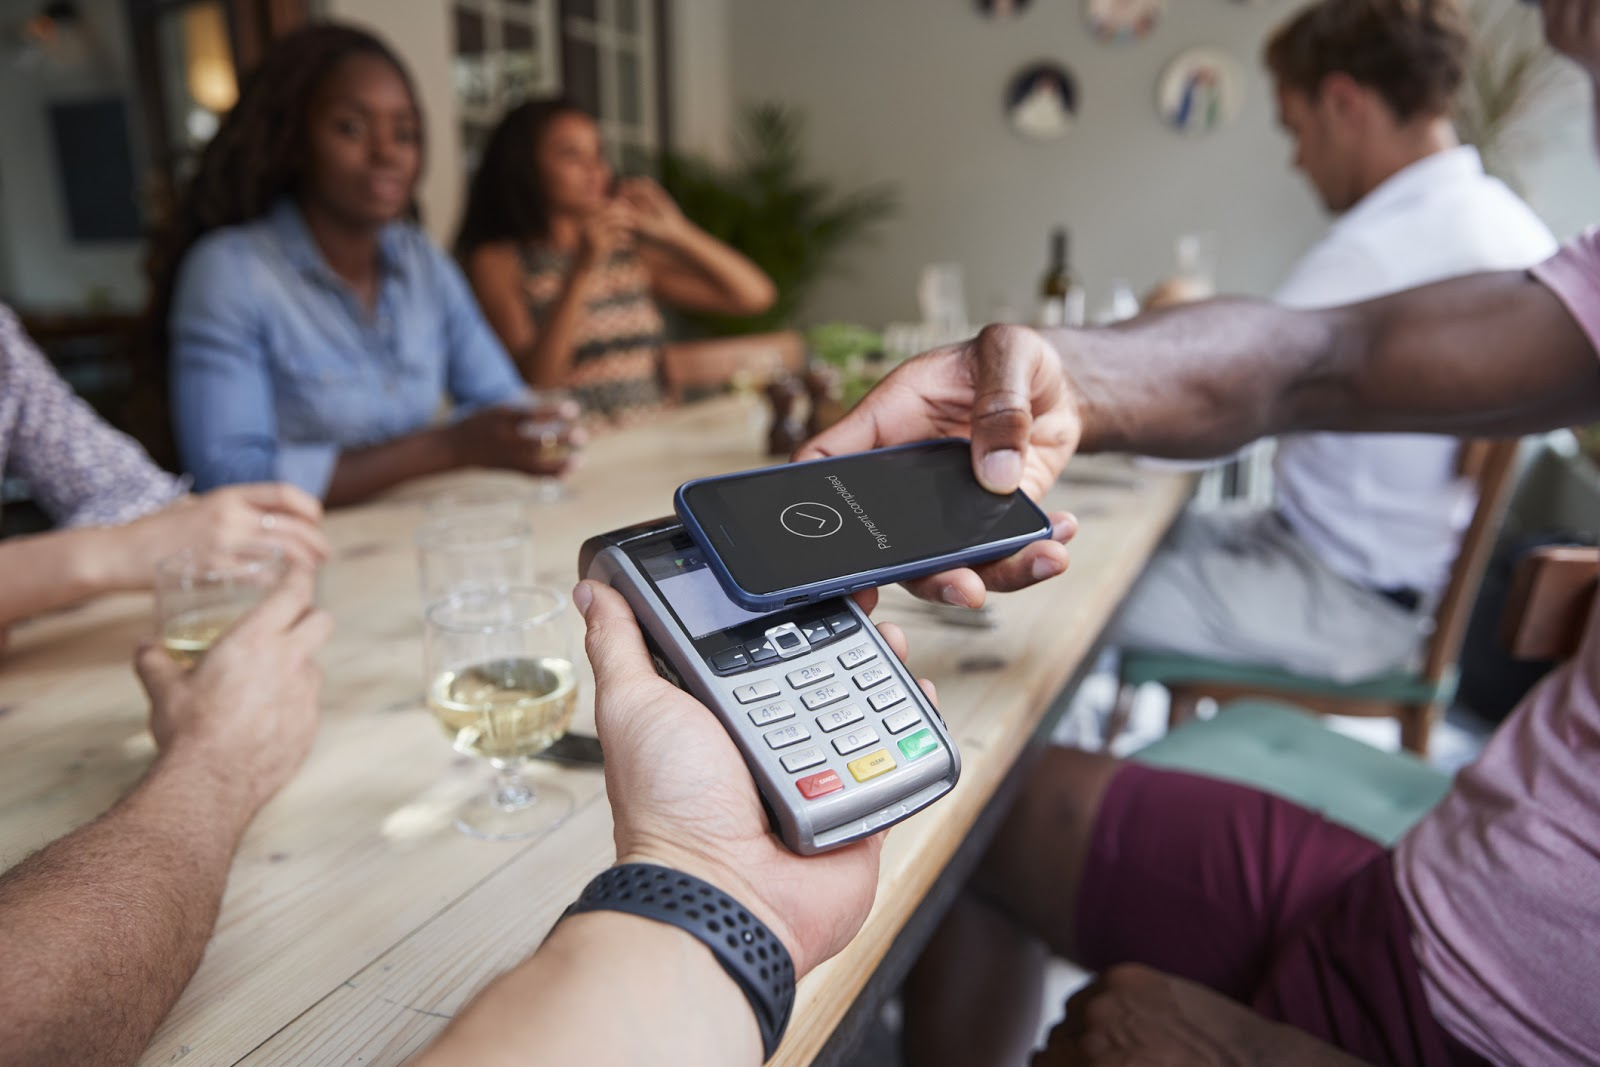 family at restaurant paying with mobile payment app on phone